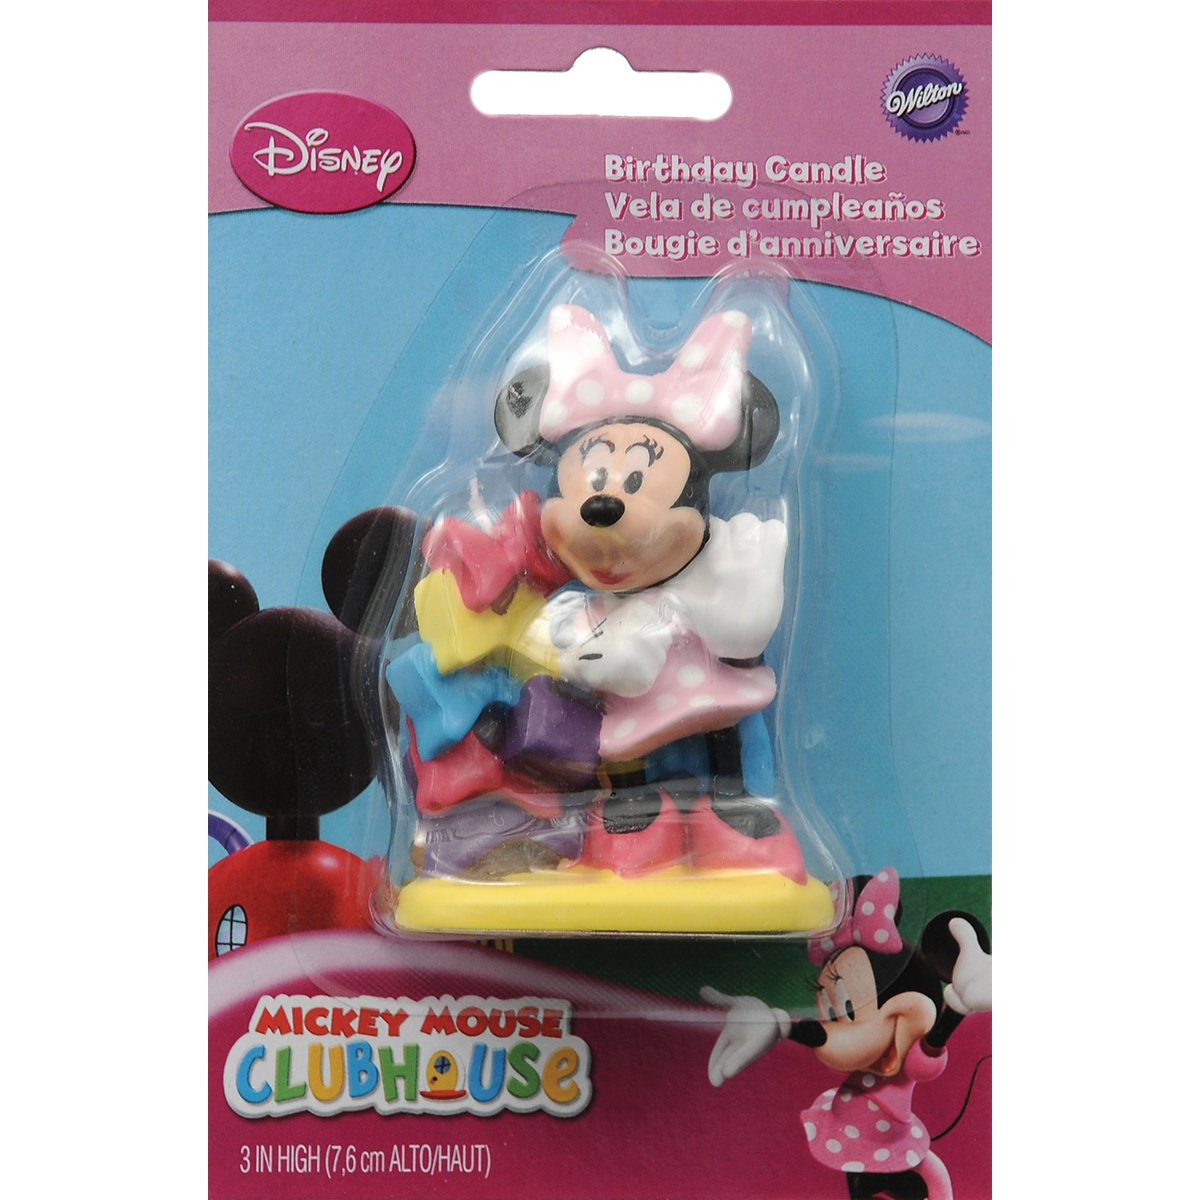 Wilton Disney Mickey Mouse Clubhouse Minnie Candle 2811-6363